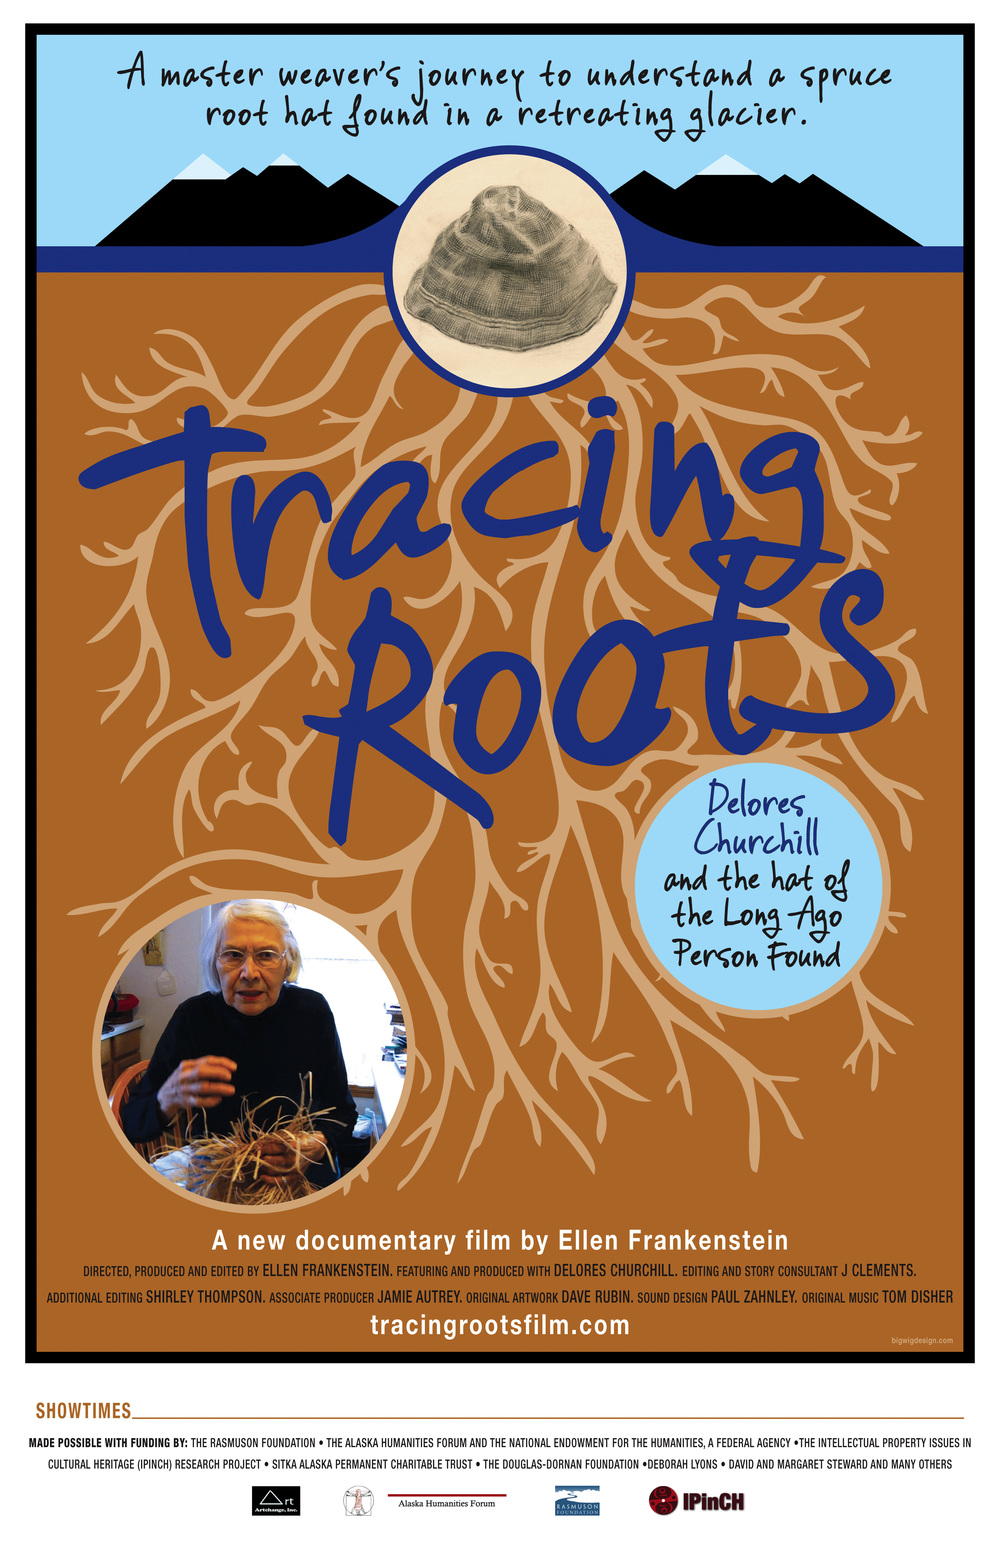 Tracing_Roots_11x17_v4_hi_rez.jpg